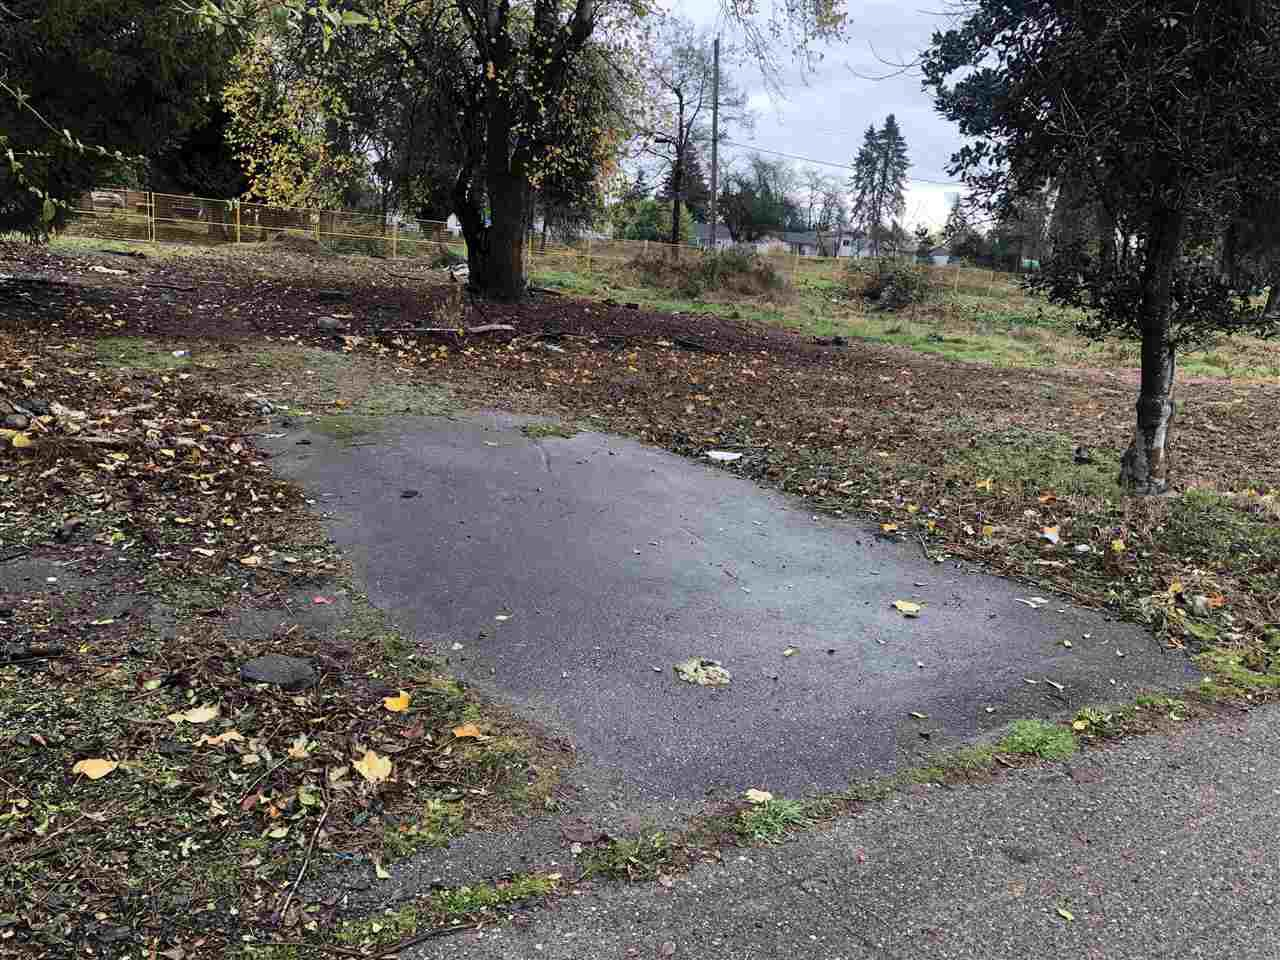 """Main Photo: 10654 WHALLEY Boulevard in Surrey: Bear Creek Green Timbers Land for sale in """"SURREY CENTRAL"""" : MLS®# R2506700"""